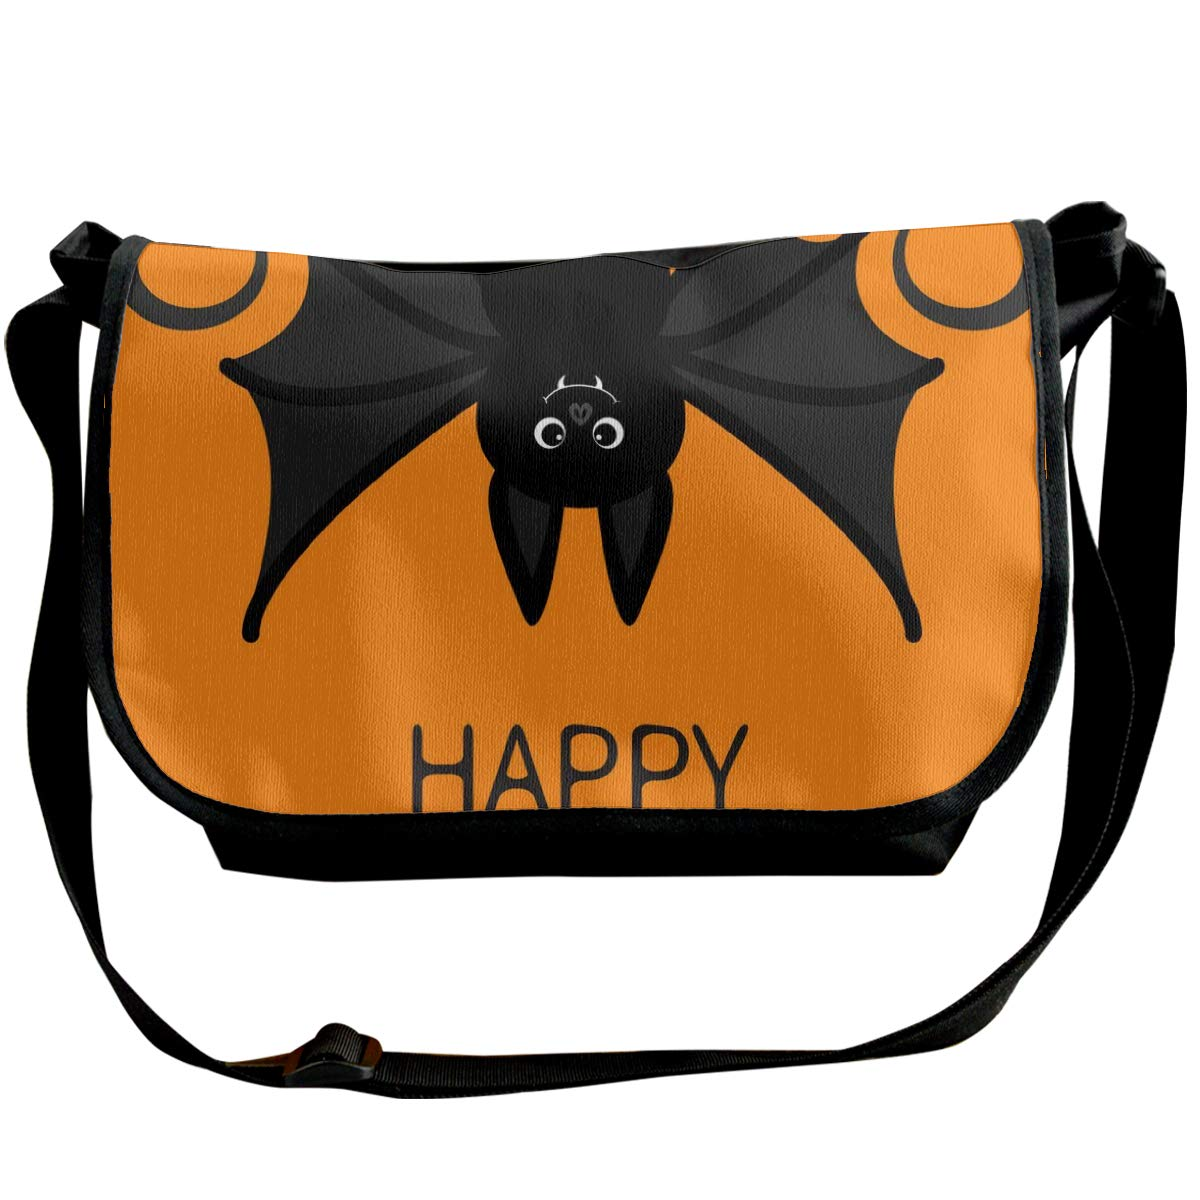 Taslilye Bat Hanging Happy Halloween Cute Cartoon Personalized Wide Crossbody Shoulder Bag For Men And Women For Daily Work Or Travel